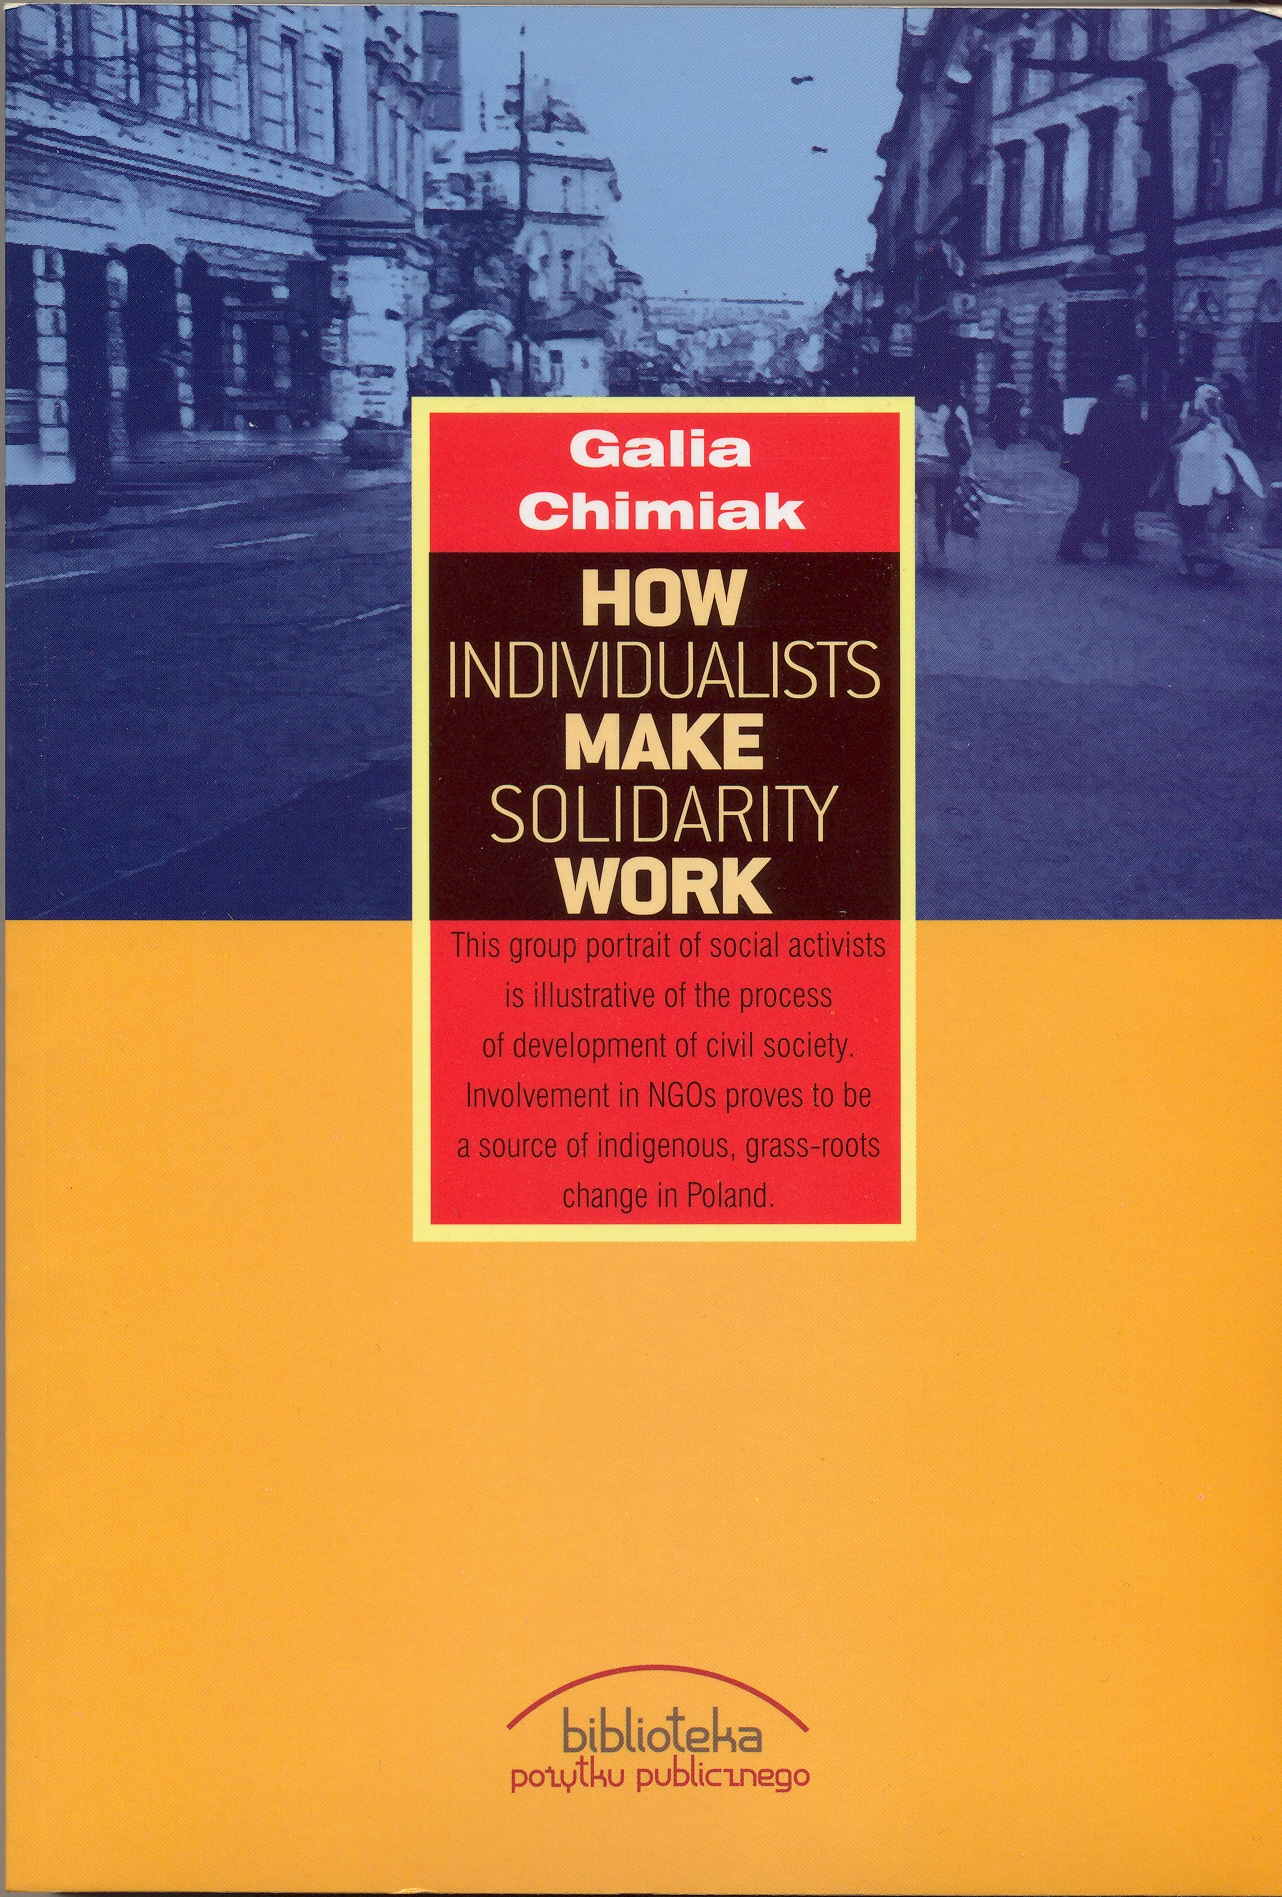 Galia Chimiak - How individualists make solidarity work